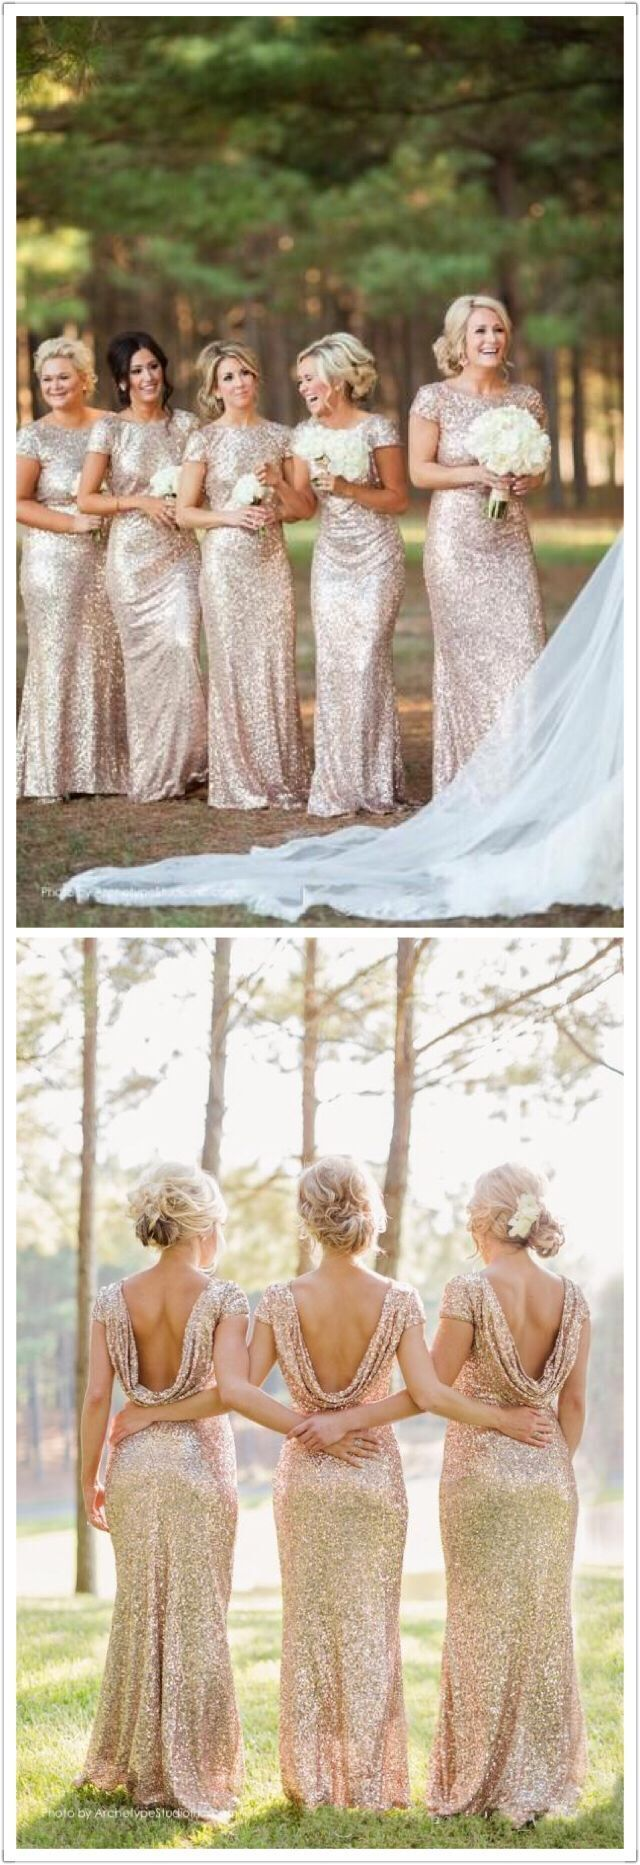 Gold Sequin bridesmaid dress,Custom Bridesmaid dress,High Neck bridesmaid dress,Short Sleeves bridesmaid dress,Open Back bridesmaid dress,Long Bridesmaid Dresses,